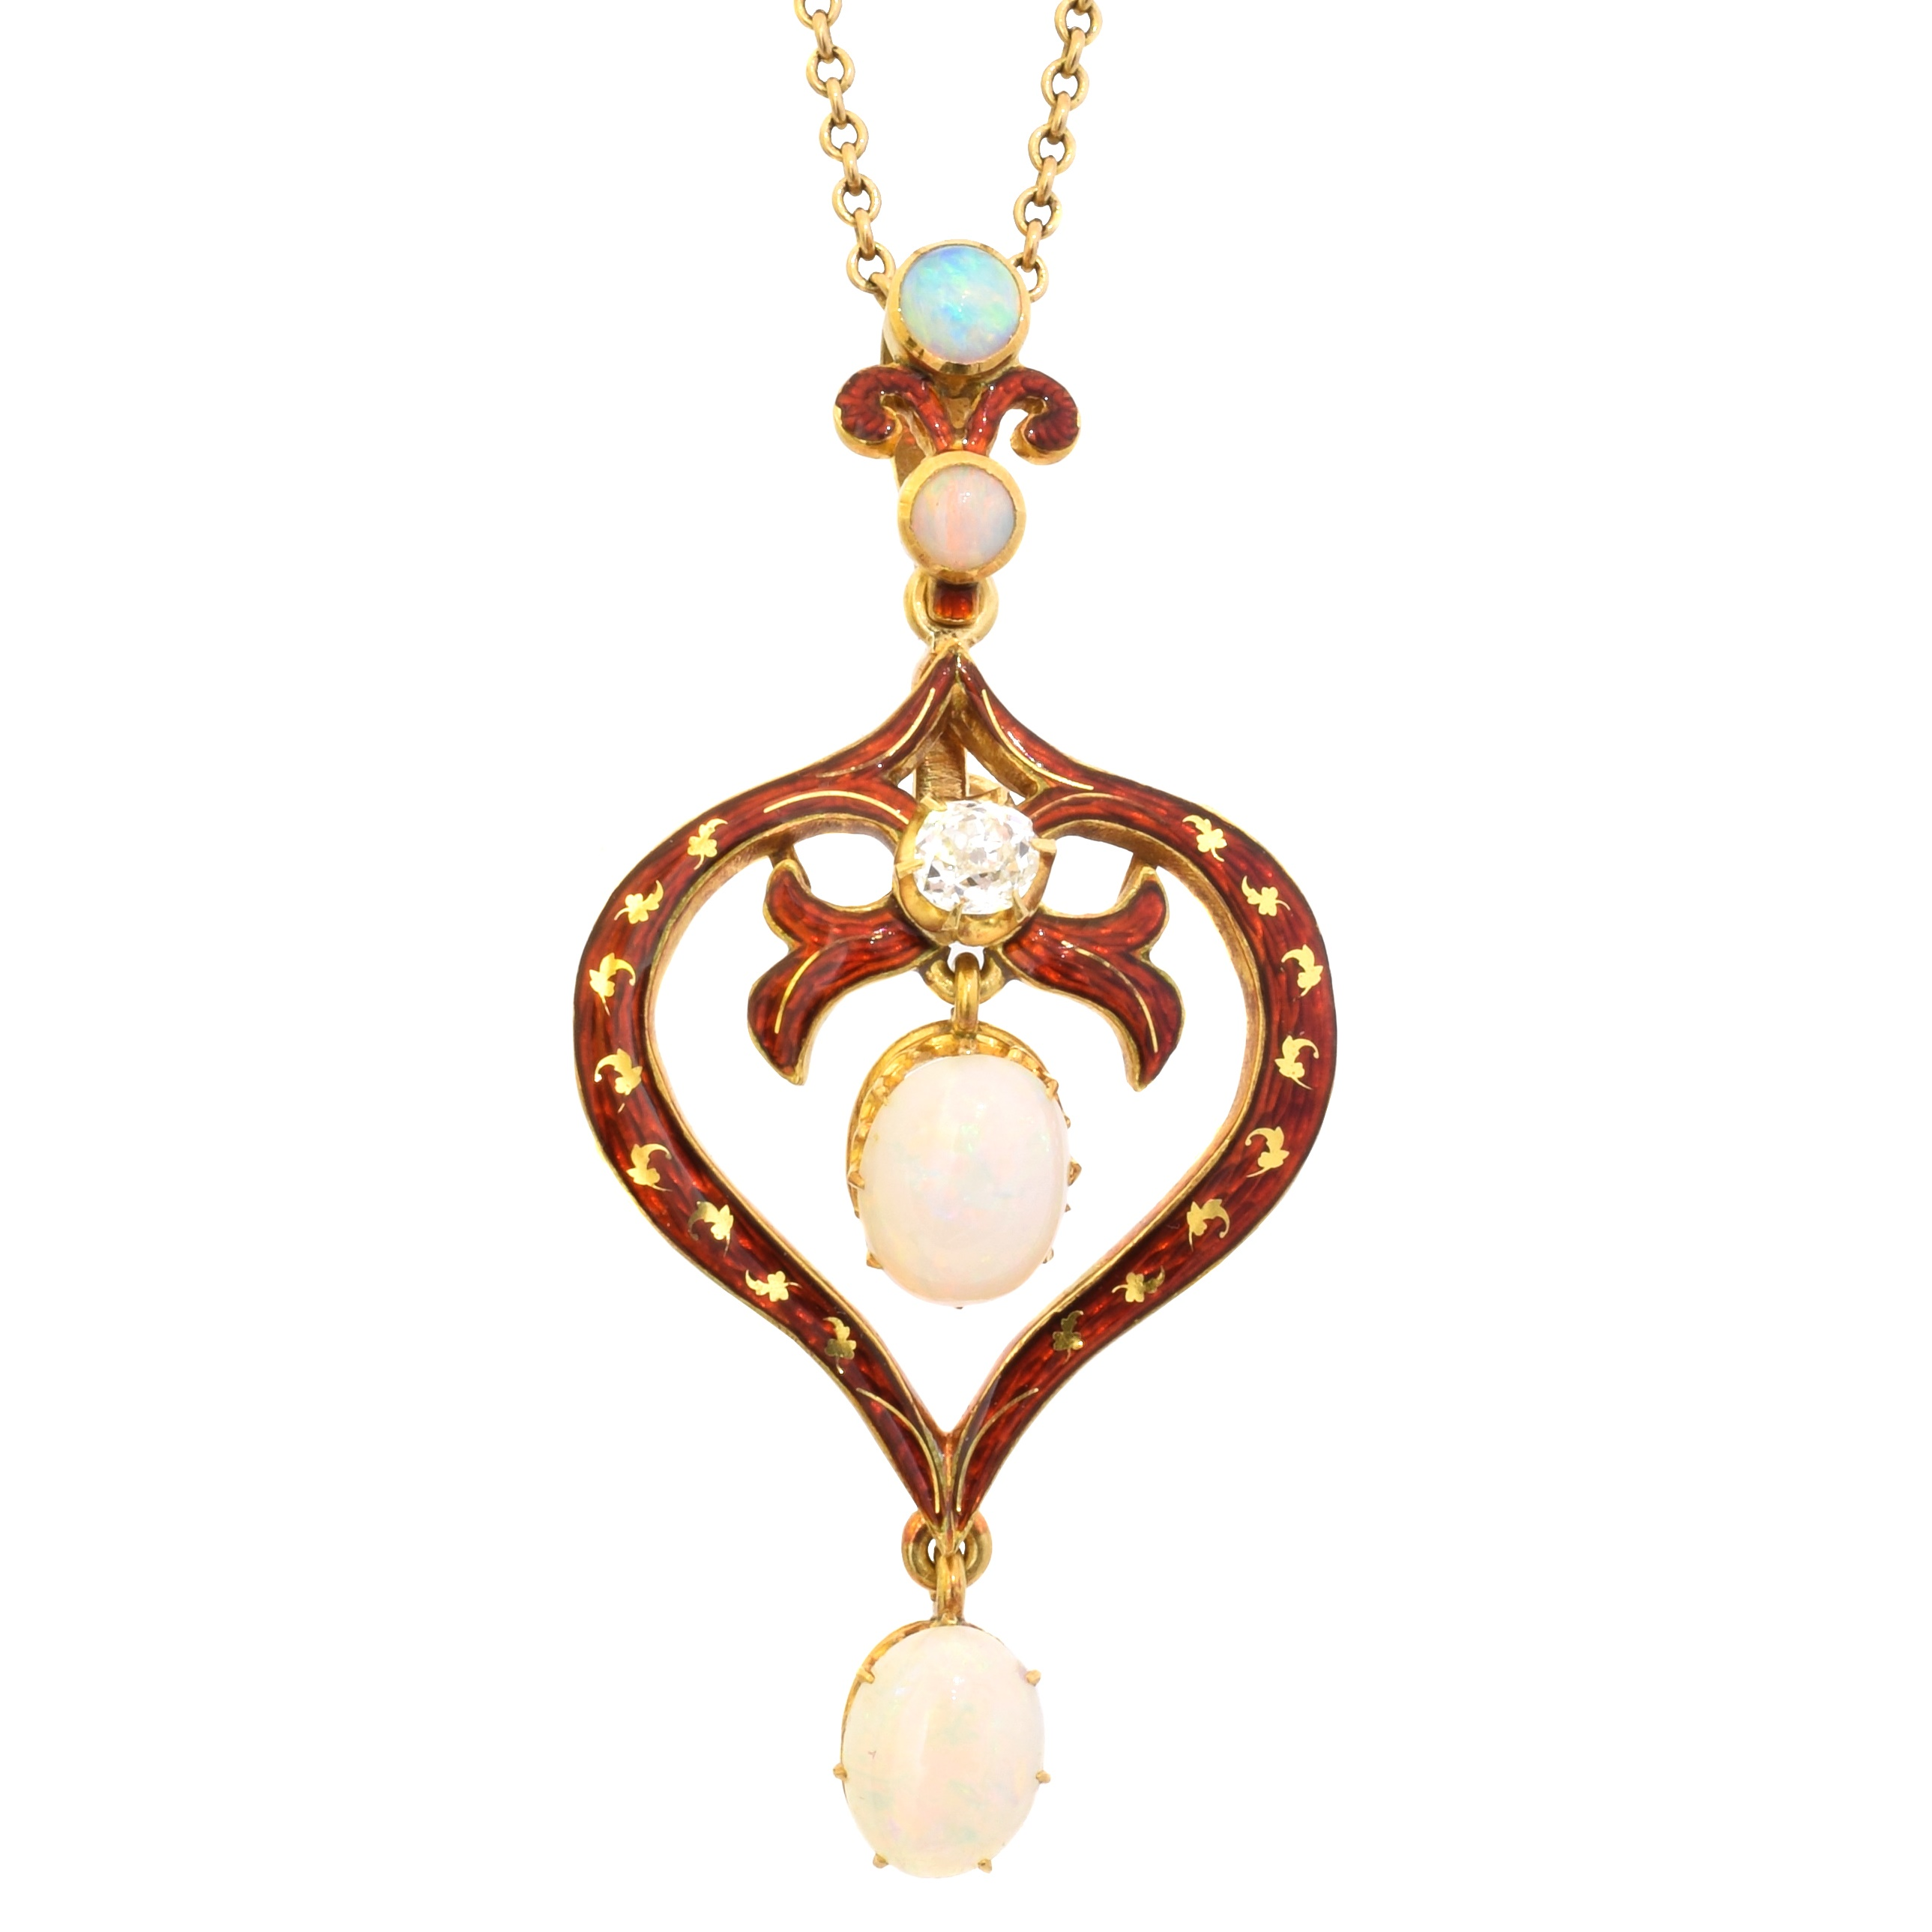 An early 20th century enamel opal and diamond pendant by Mrs Newman, of openwork design, the oval opal cabochon and old cut diamond line within a red enamel surround and scrolling surmount, with unassociated fancy link chain, may also be worn as a brooch, signed Mrs N, with detachable brooch fitting, length 4.9cm, gross weight 8.5g. With maker's fitted case 'Mrs Newman Goldsmith & Court Jeweller 10 Savile Row.